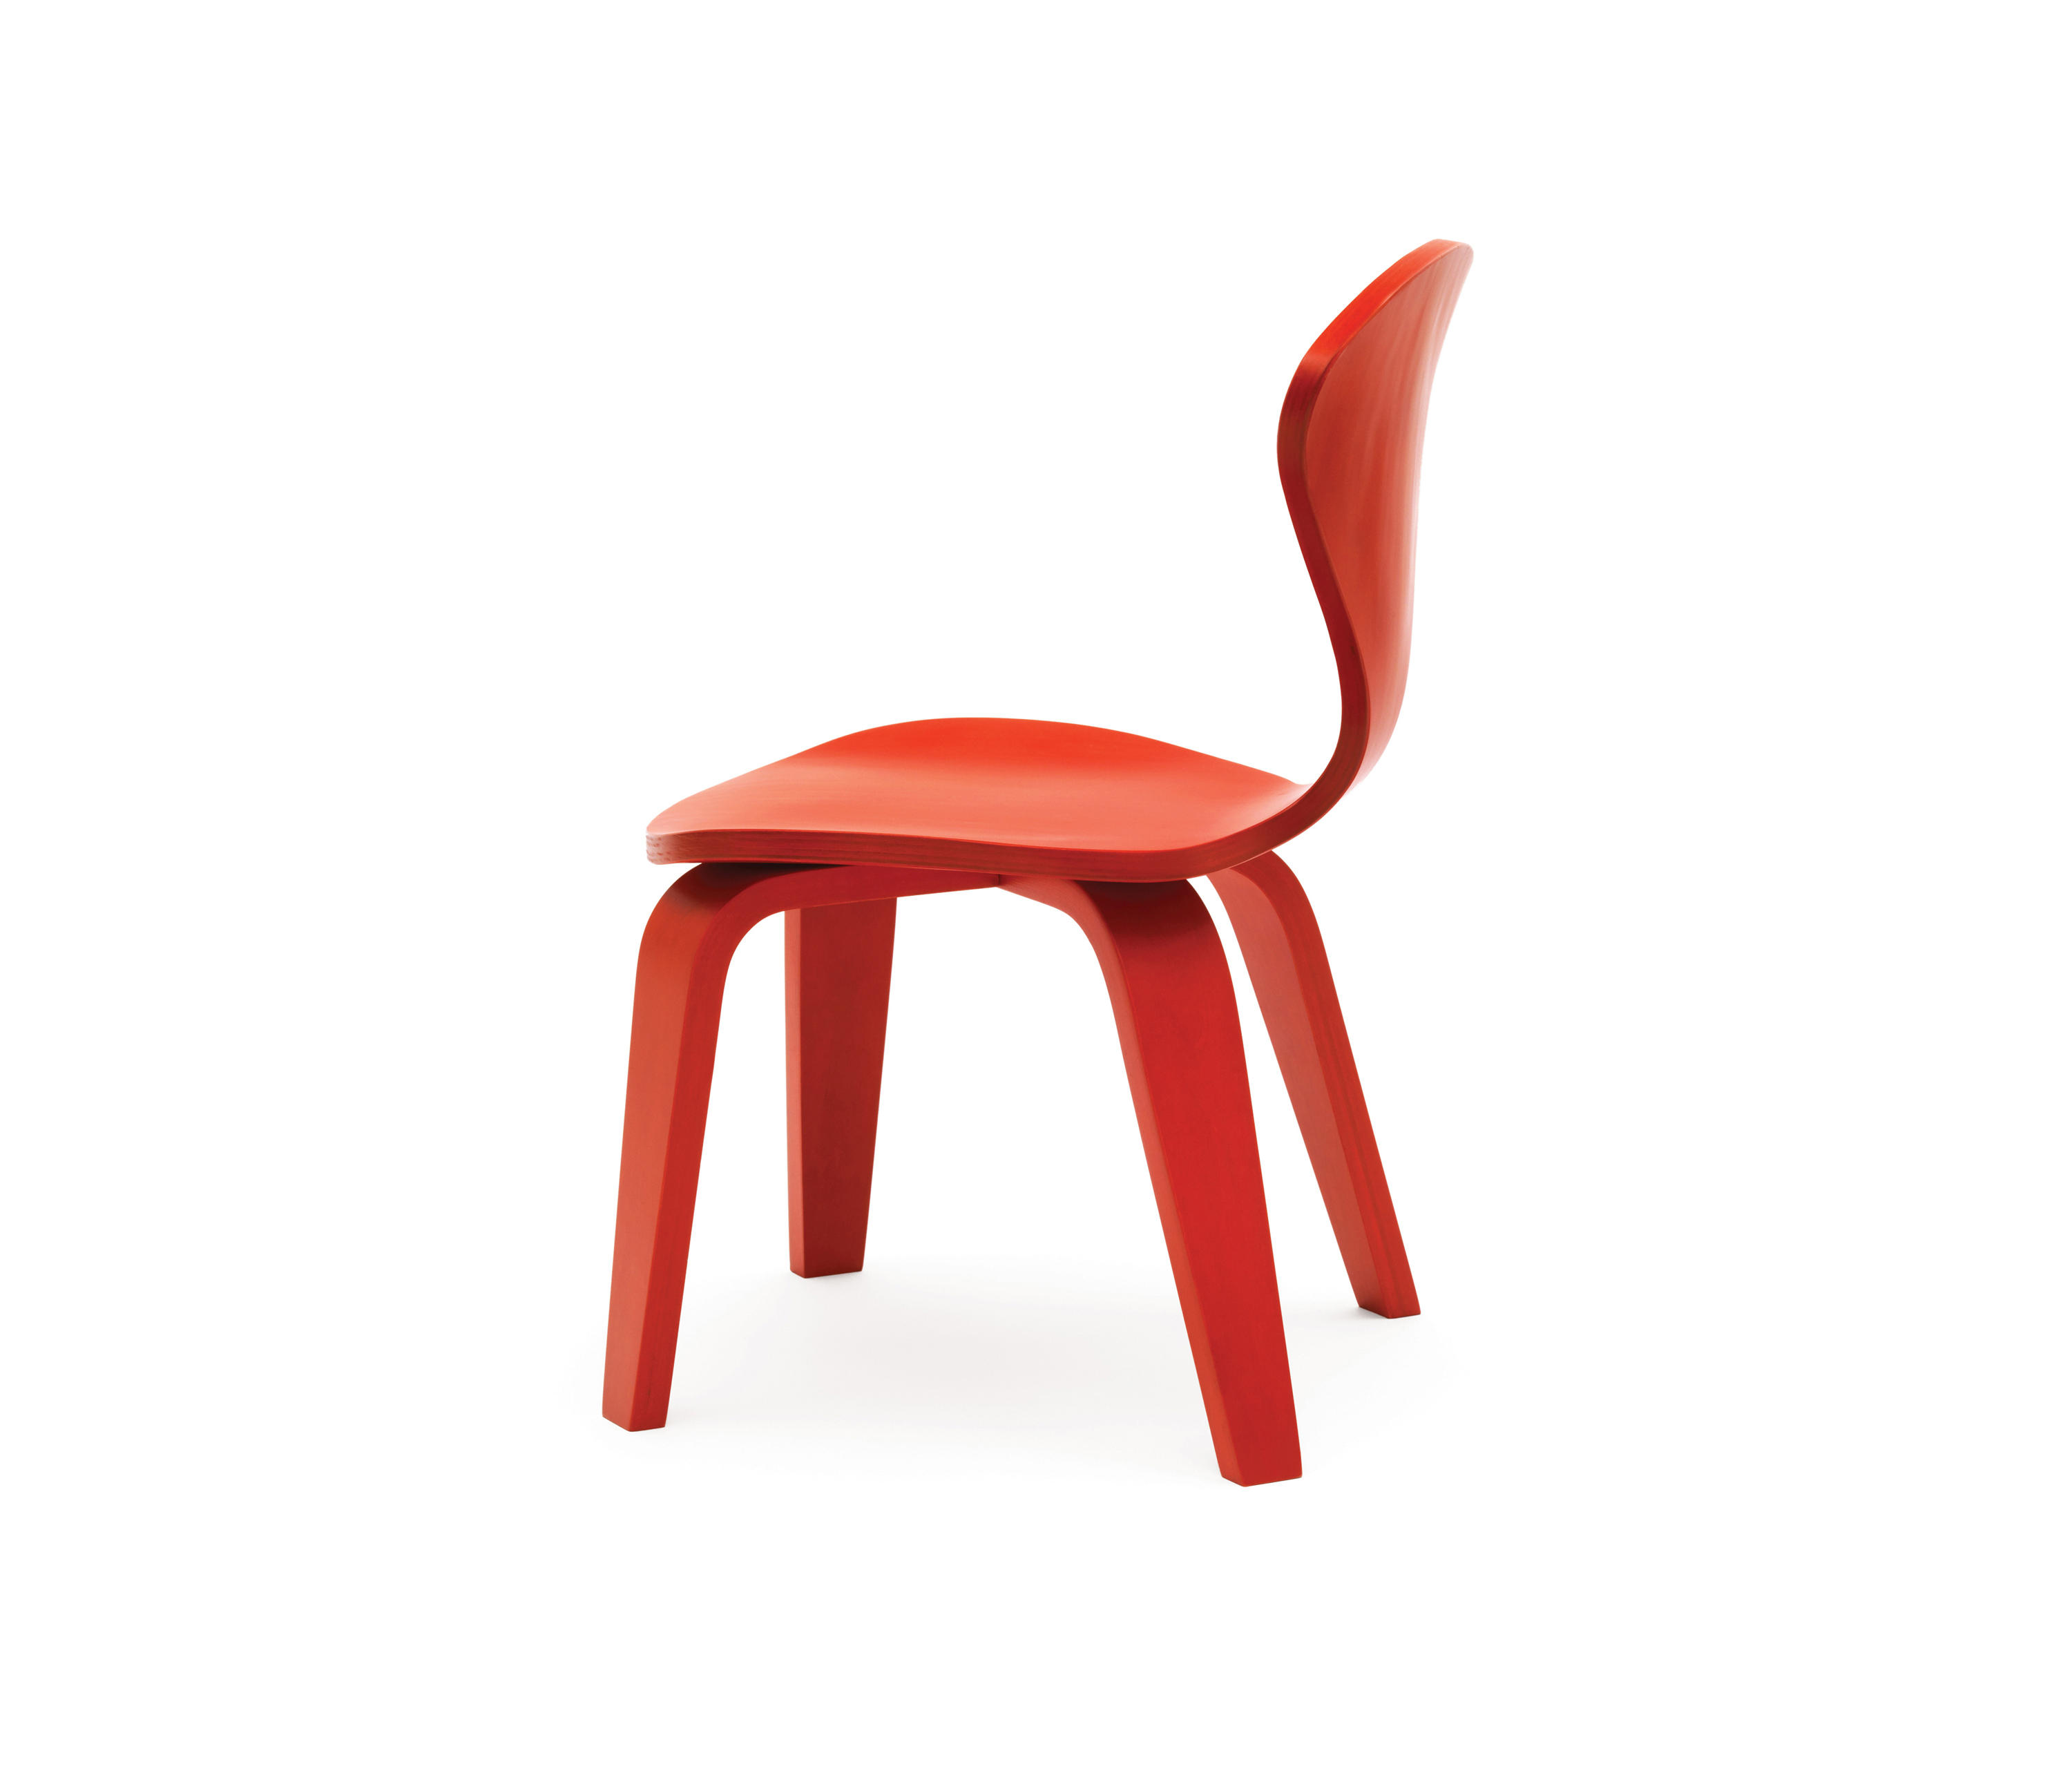 ... Cherner Childrens Chair By Cherner | Kids Chairs ...